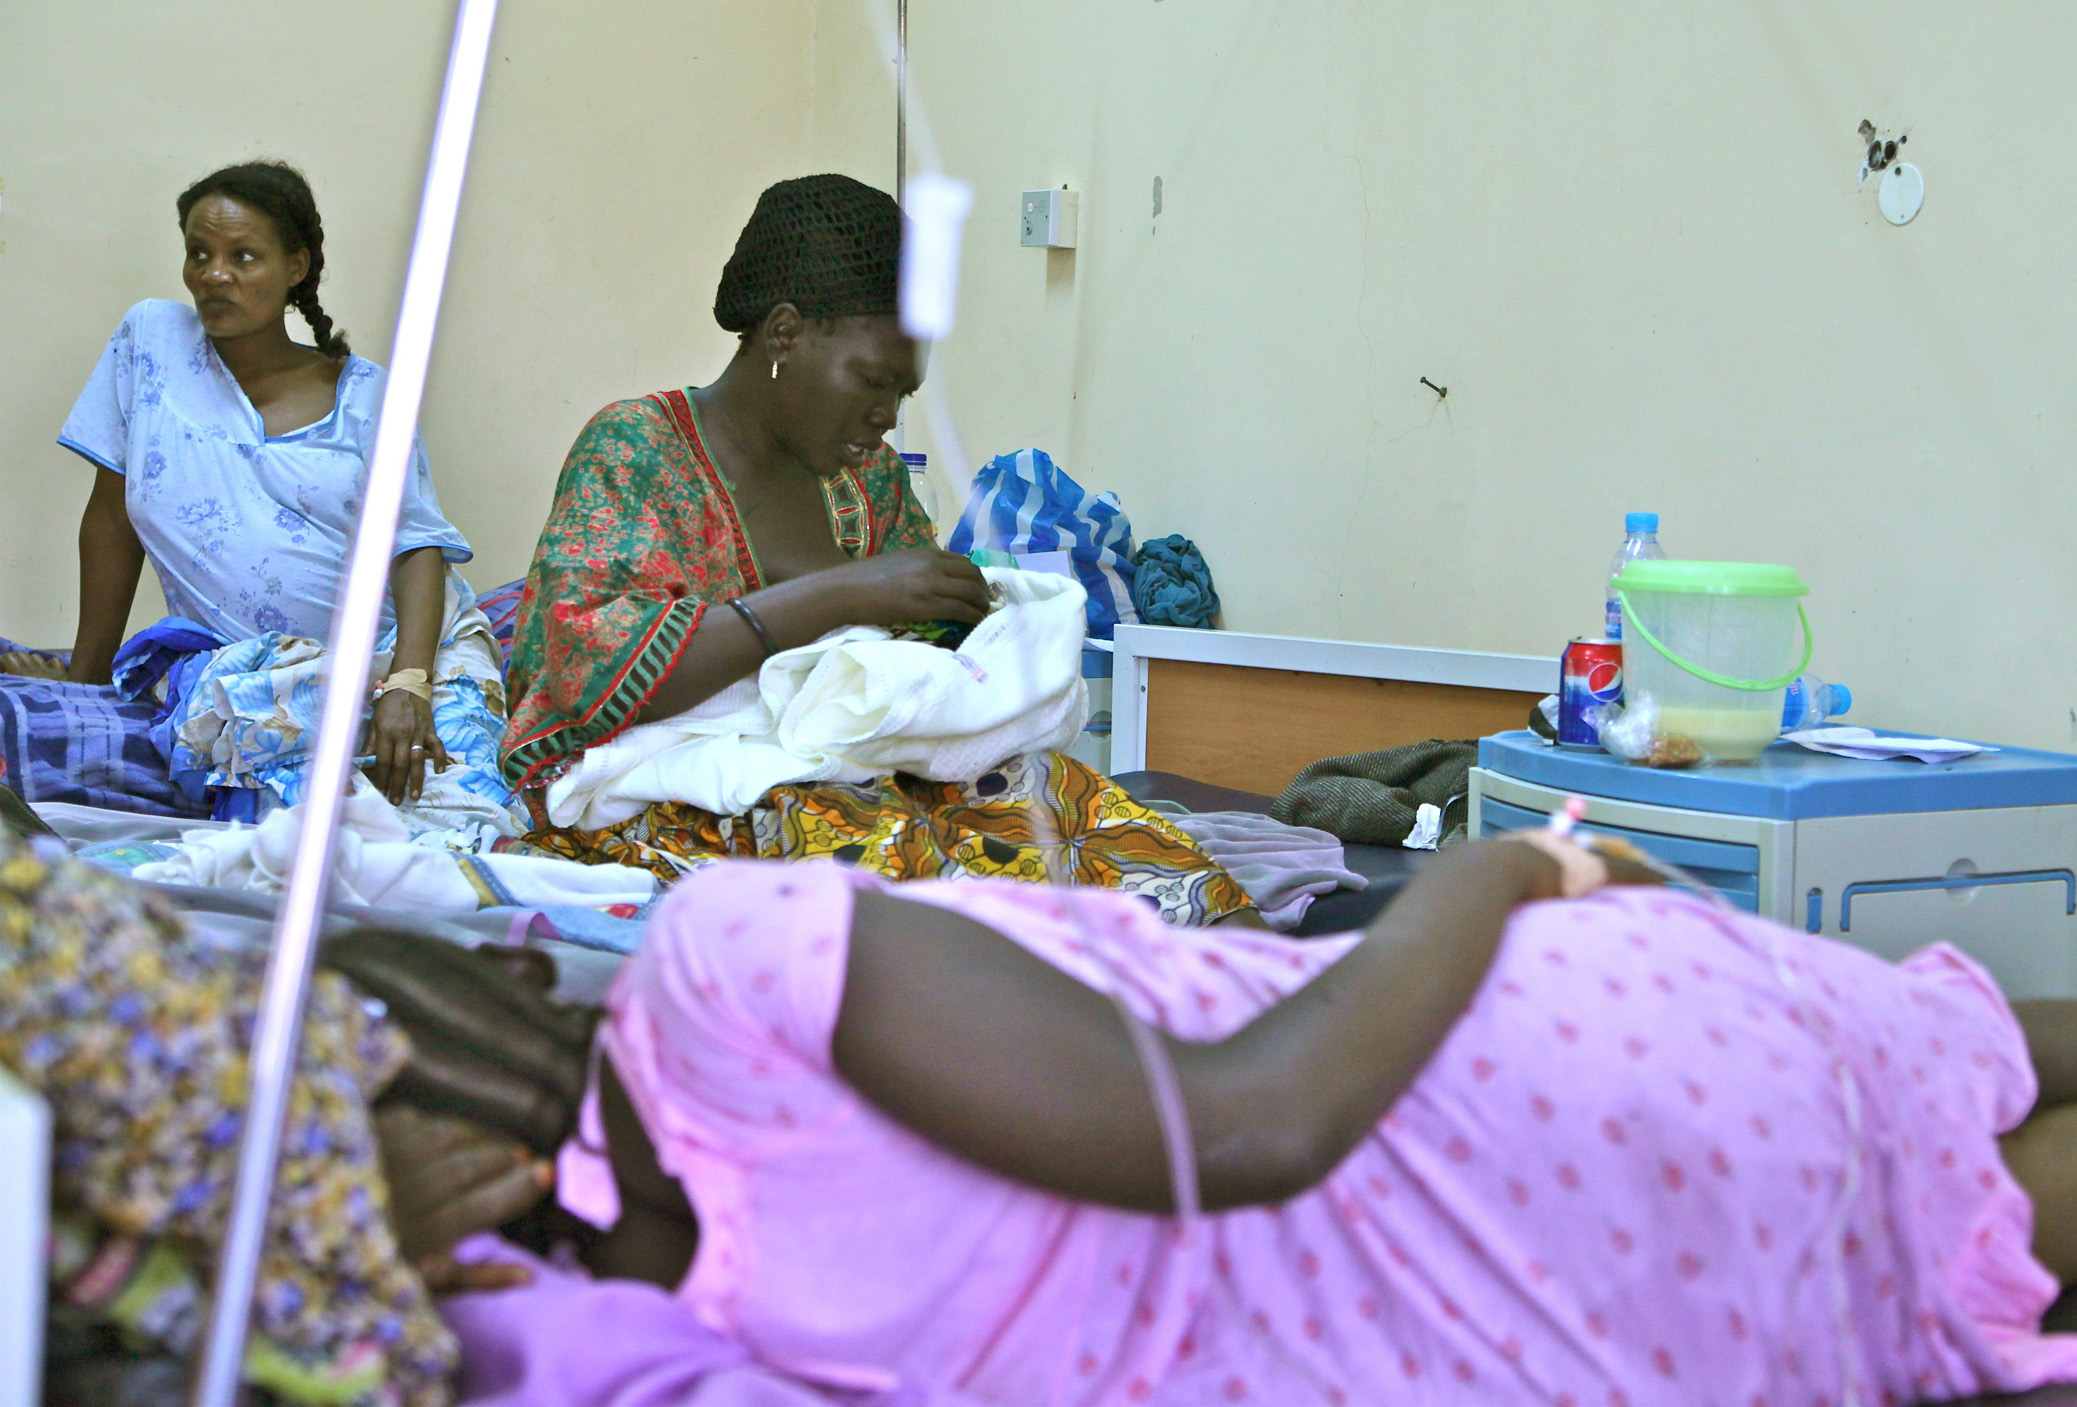 South Sudan's main hospital in Juba has just eight beds in its maternity ward; no trained midwives are available at night